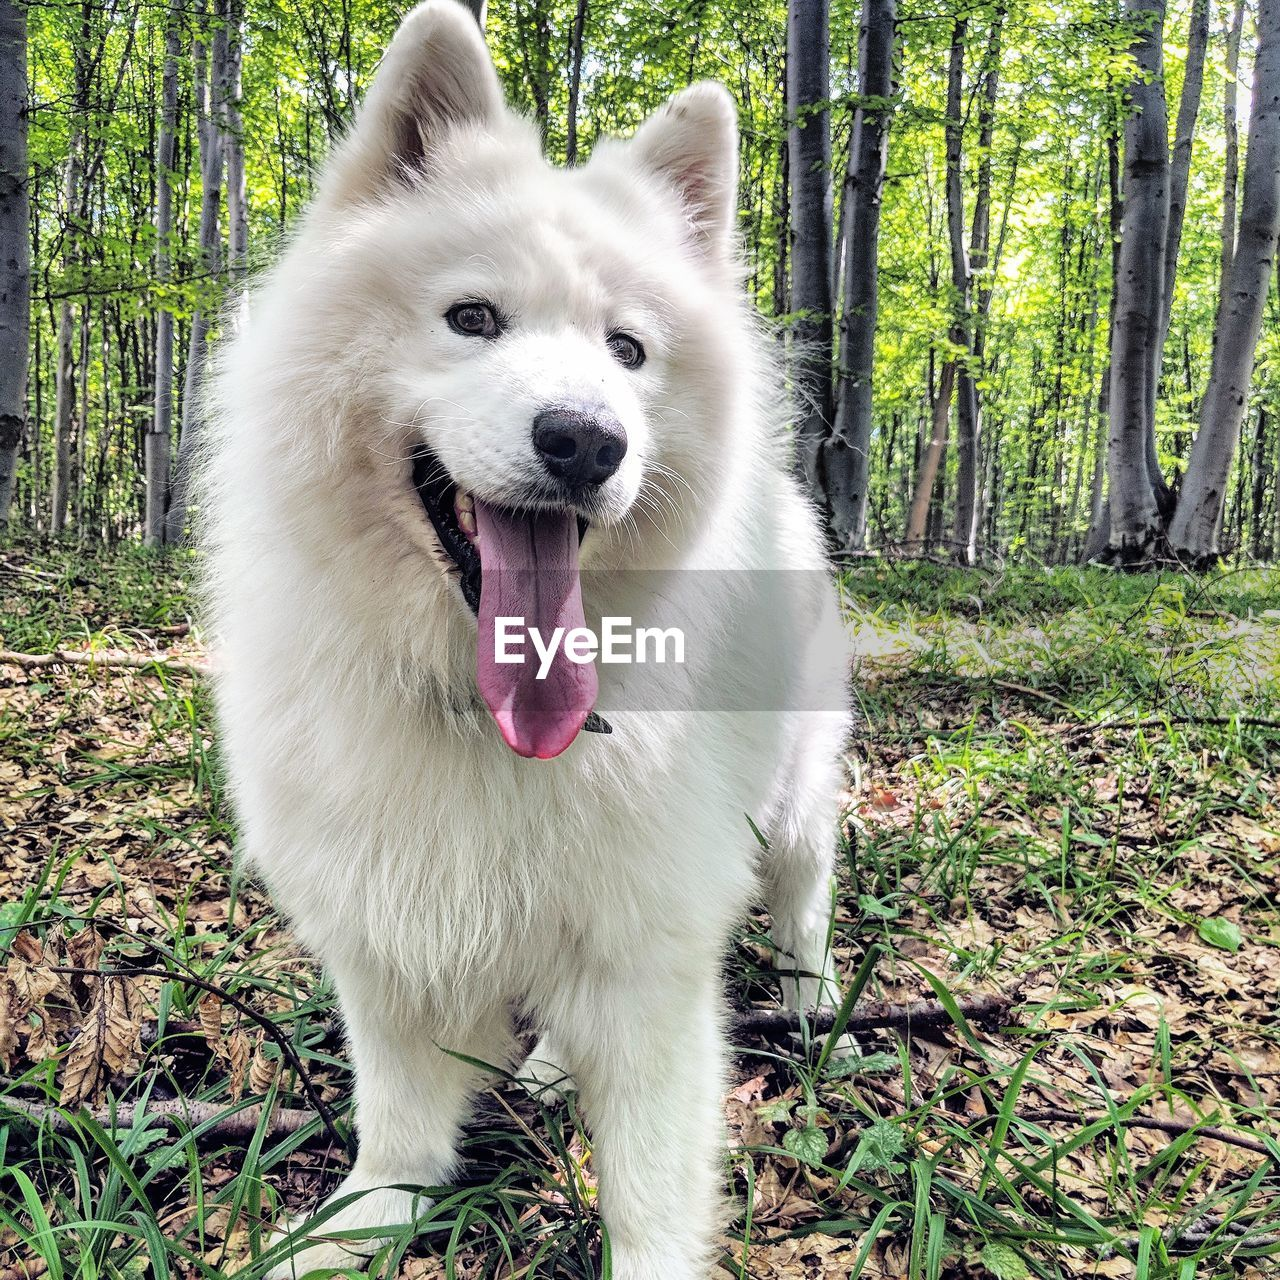 one animal, canine, mammal, dog, pets, animal themes, domestic, domestic animals, animal, land, vertebrate, plant, tree, forest, day, nature, field, white color, portrait, mouth, mouth open, no people, outdoors, animal tongue